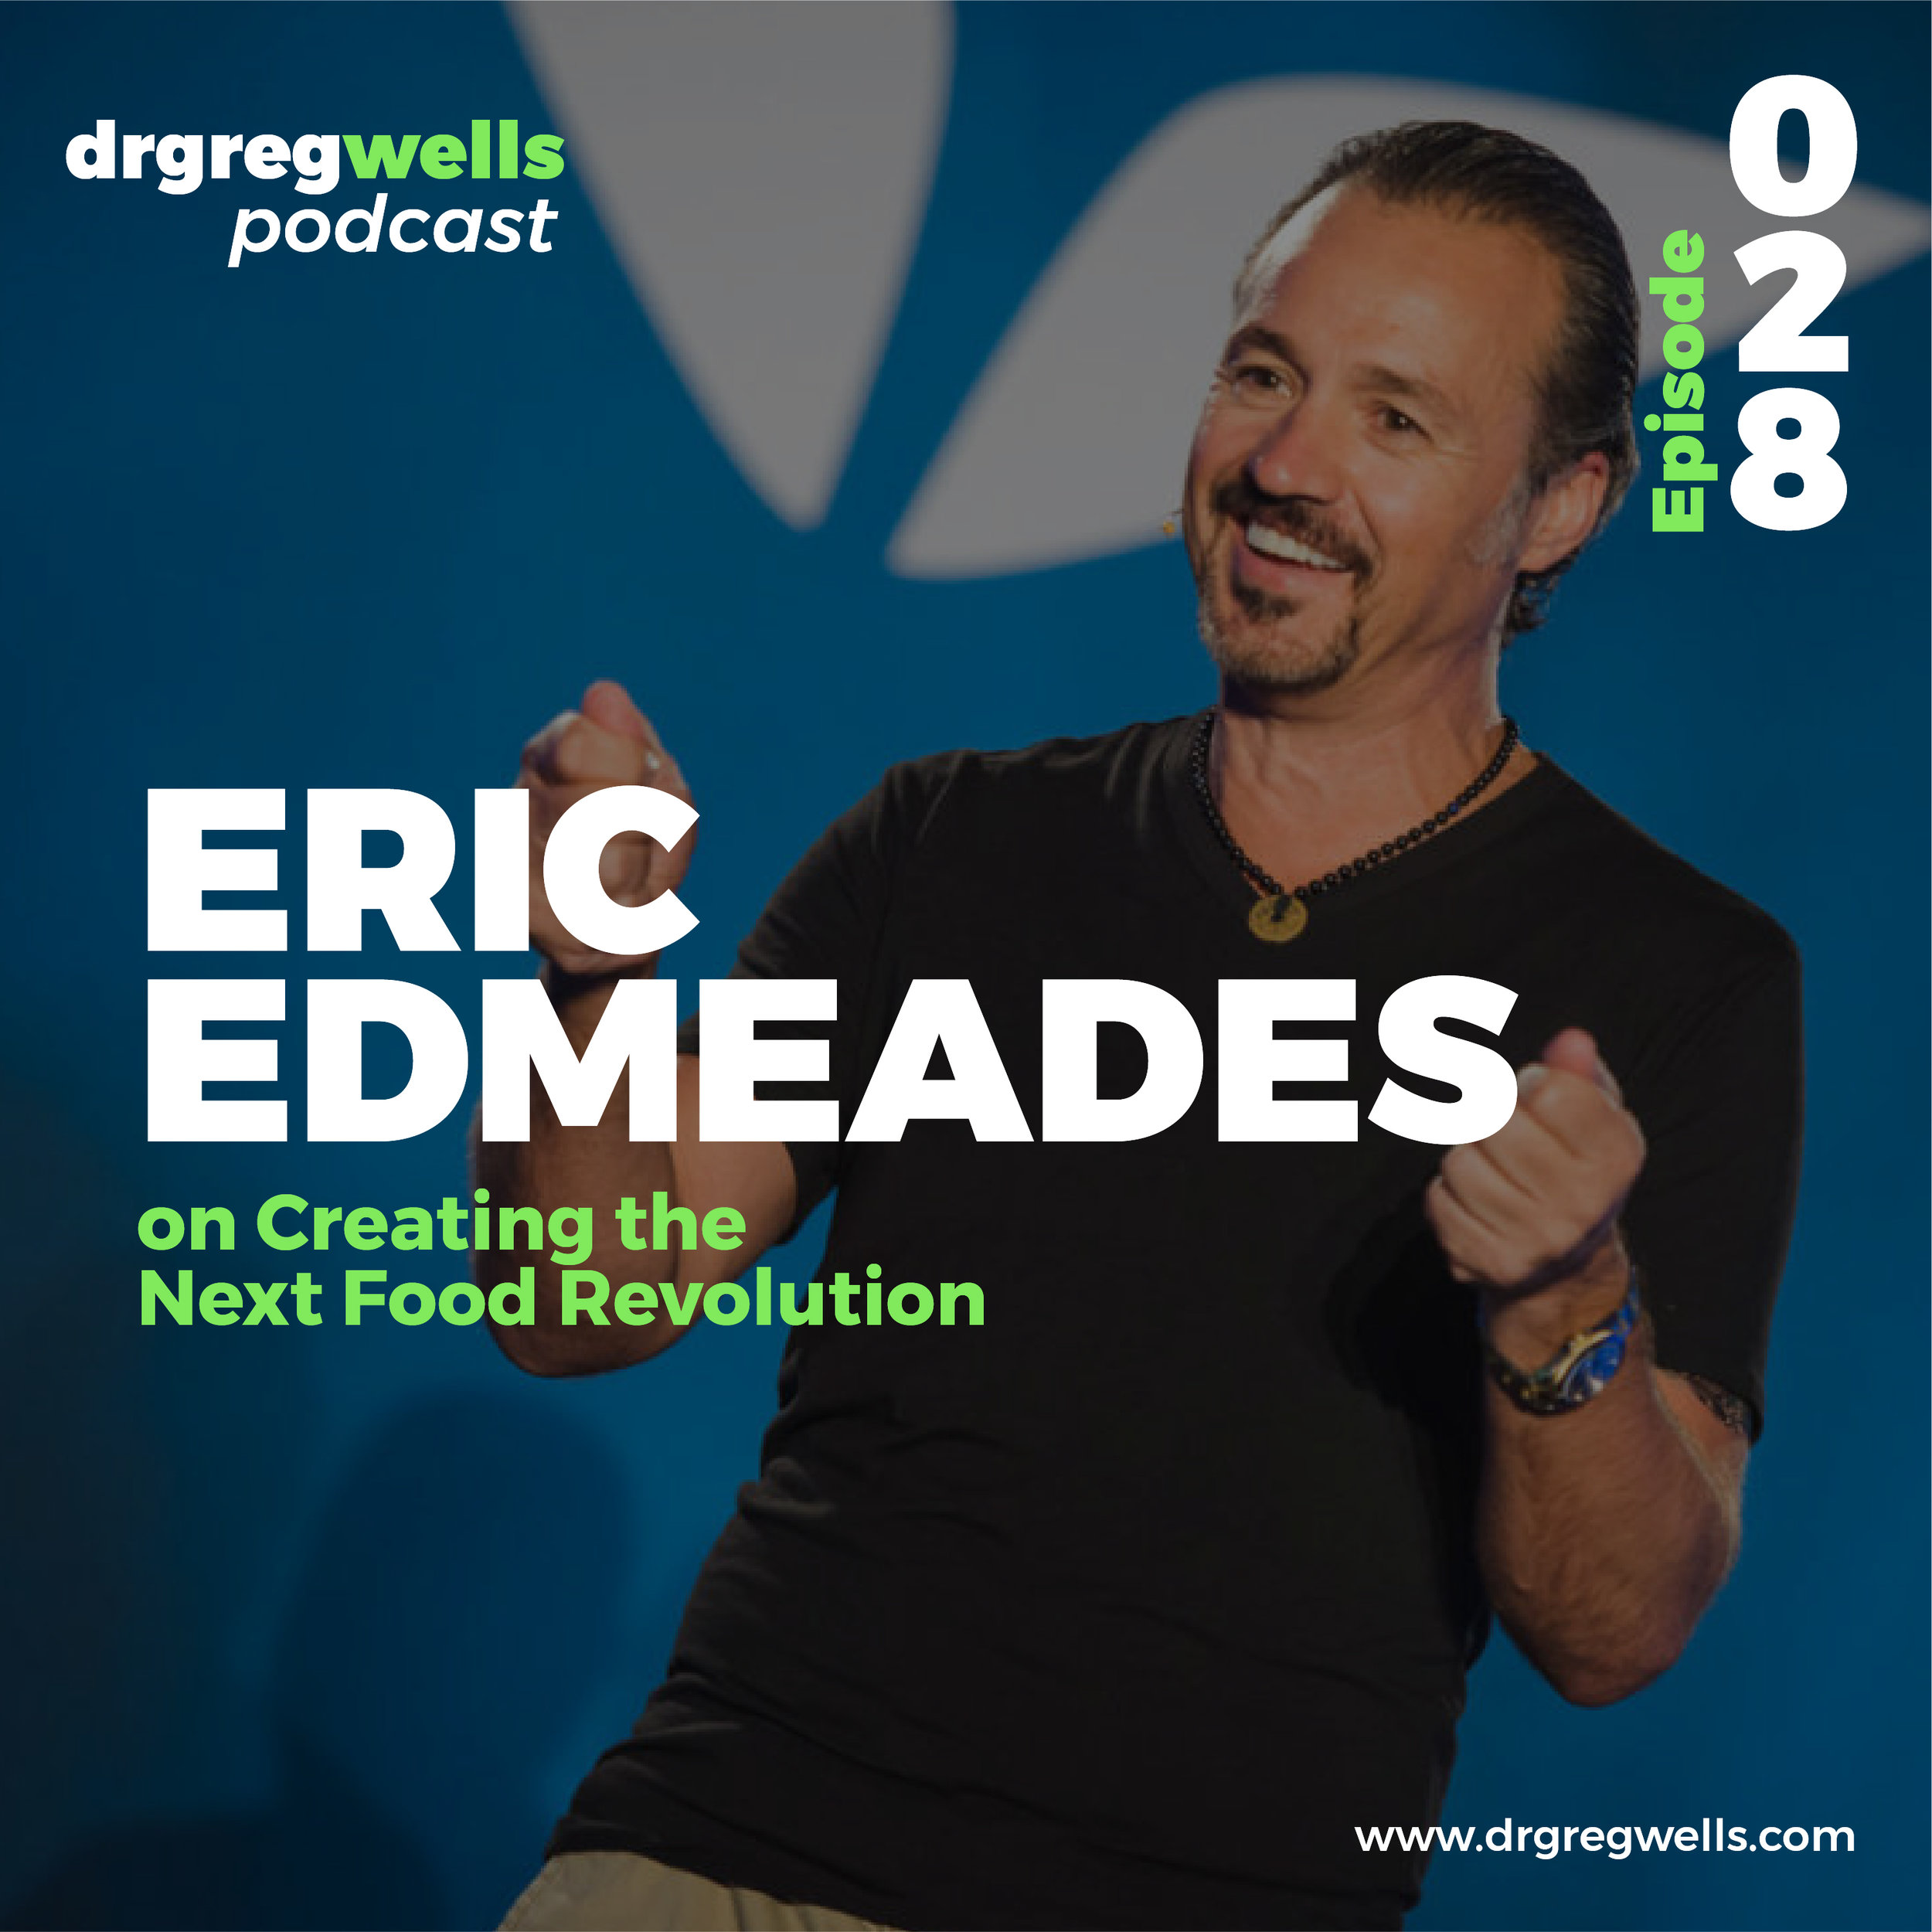 Dr Greg Wells Podcast Guest EP 1 - 32-28.jpg